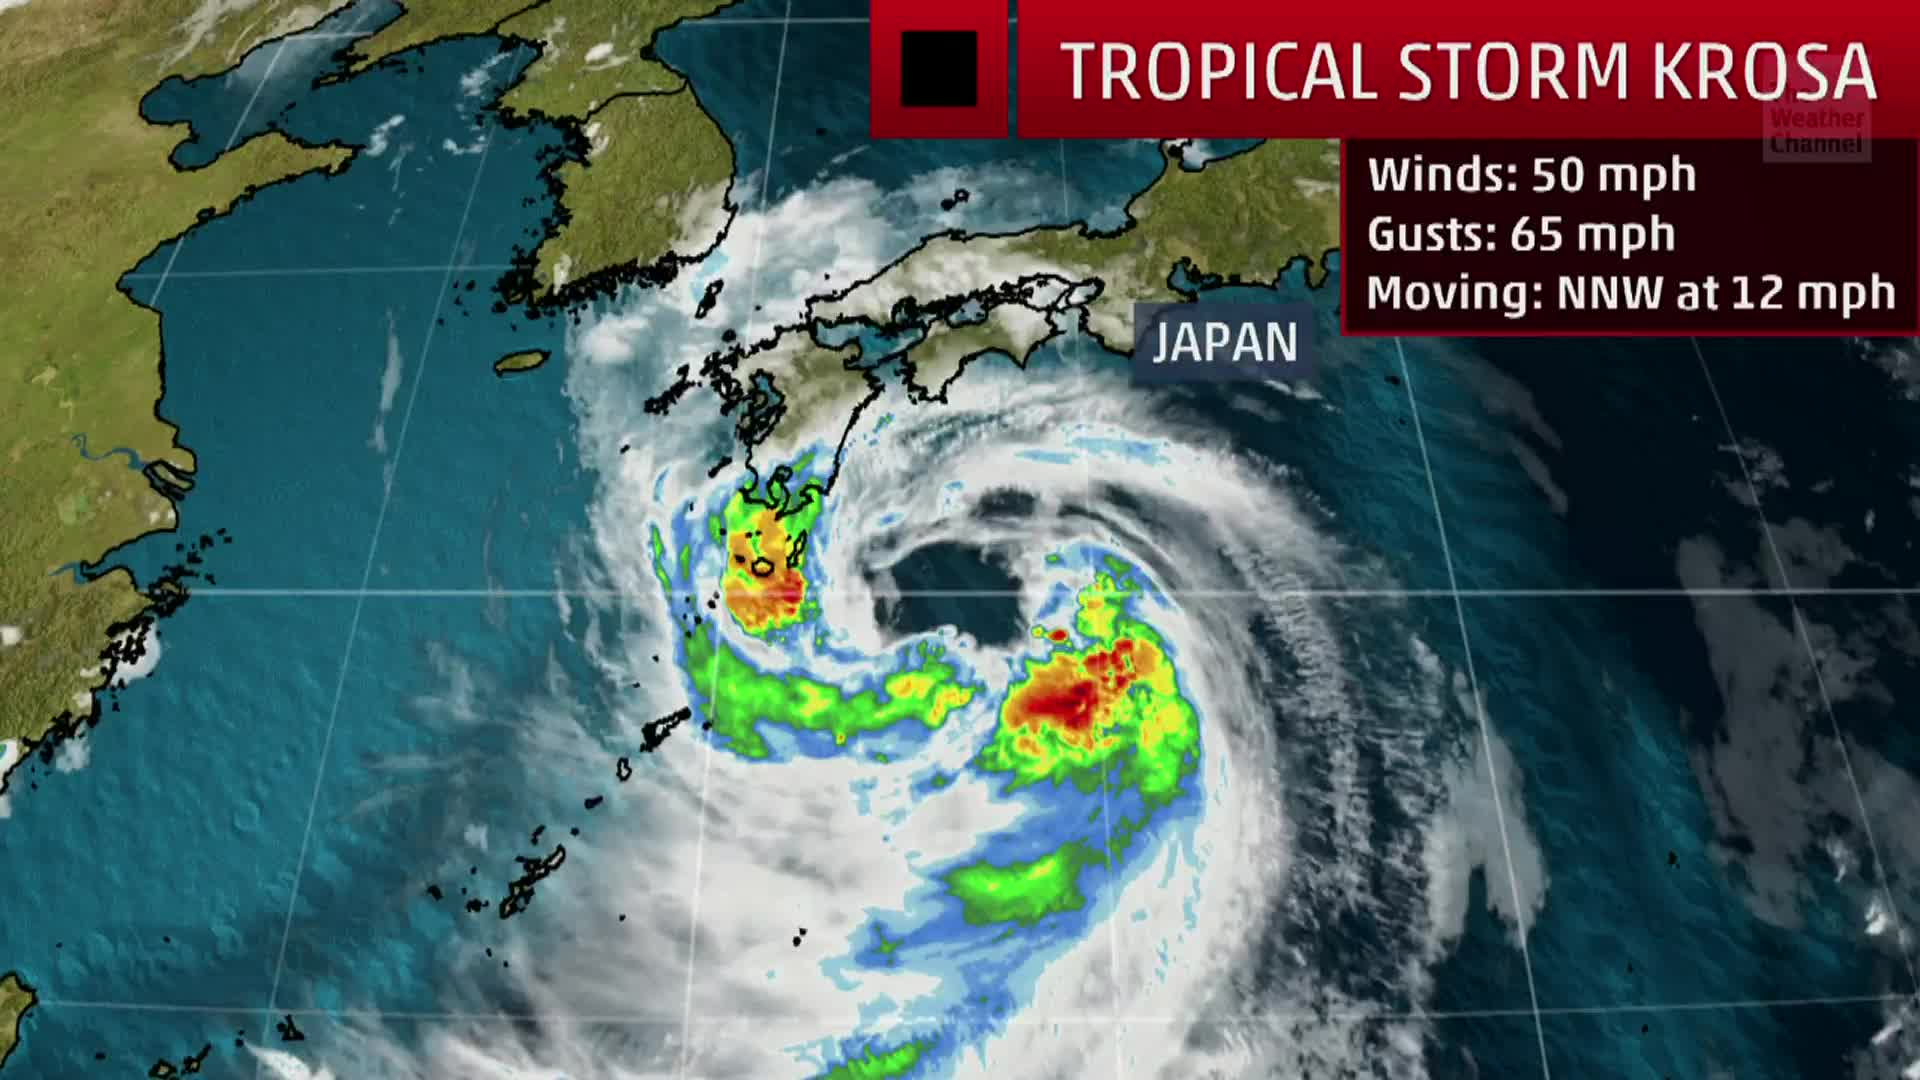 Forecast for Tropical Storm Krosa which is close to making landfall on Japan.